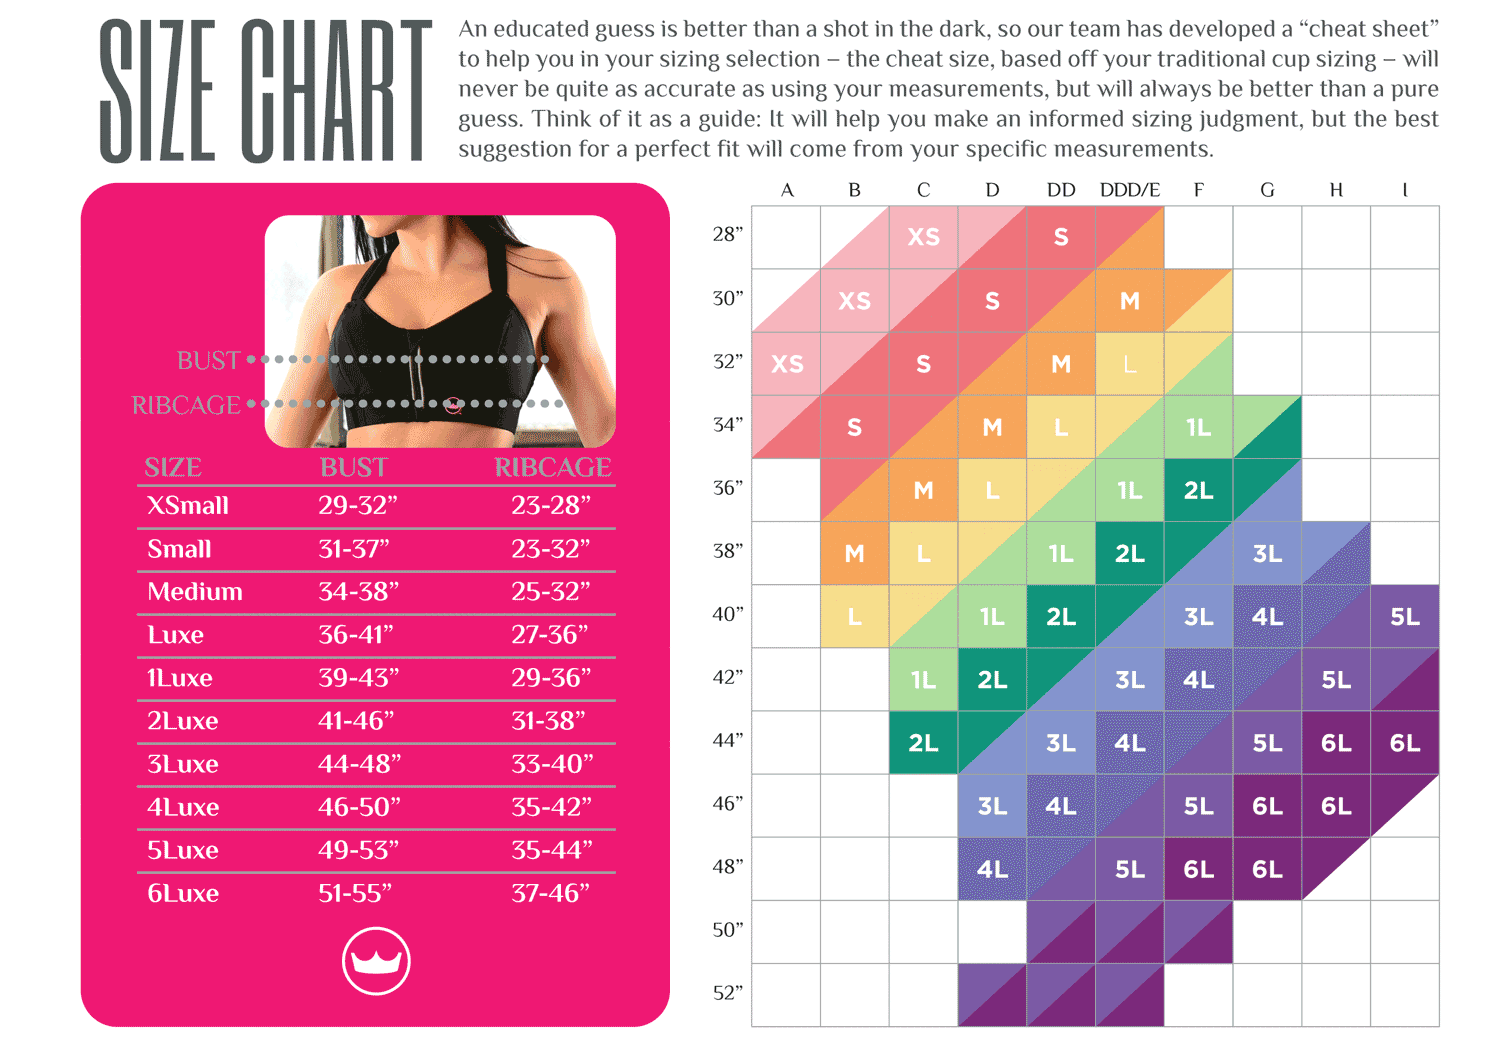 Shefit Custom Adjustable Sports Bra Size Chart